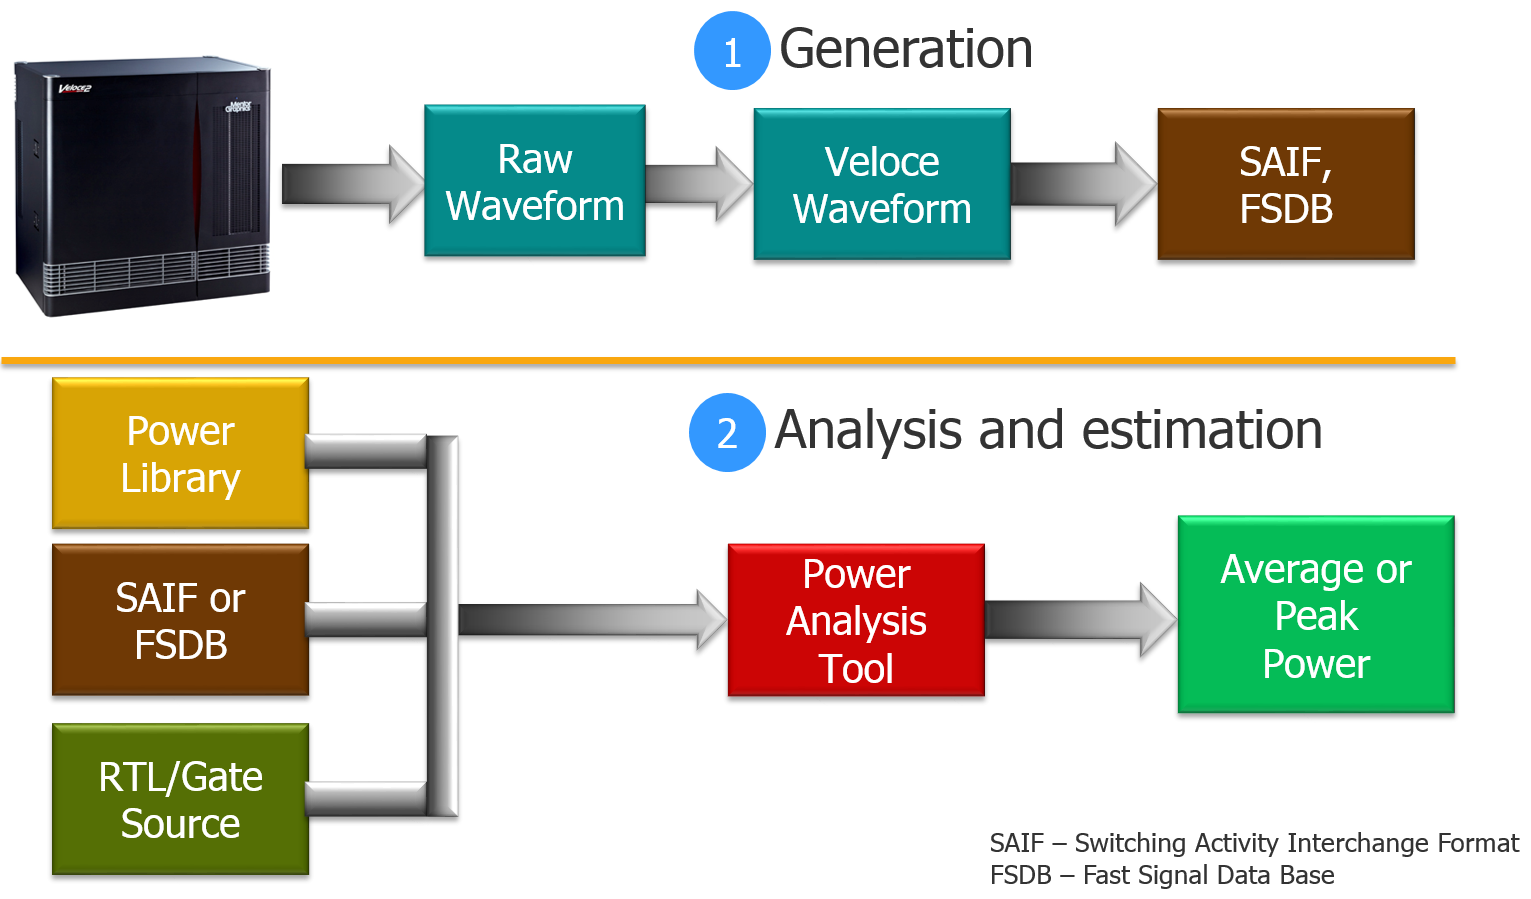 Fig-1. ConventionalPowerAnalysis